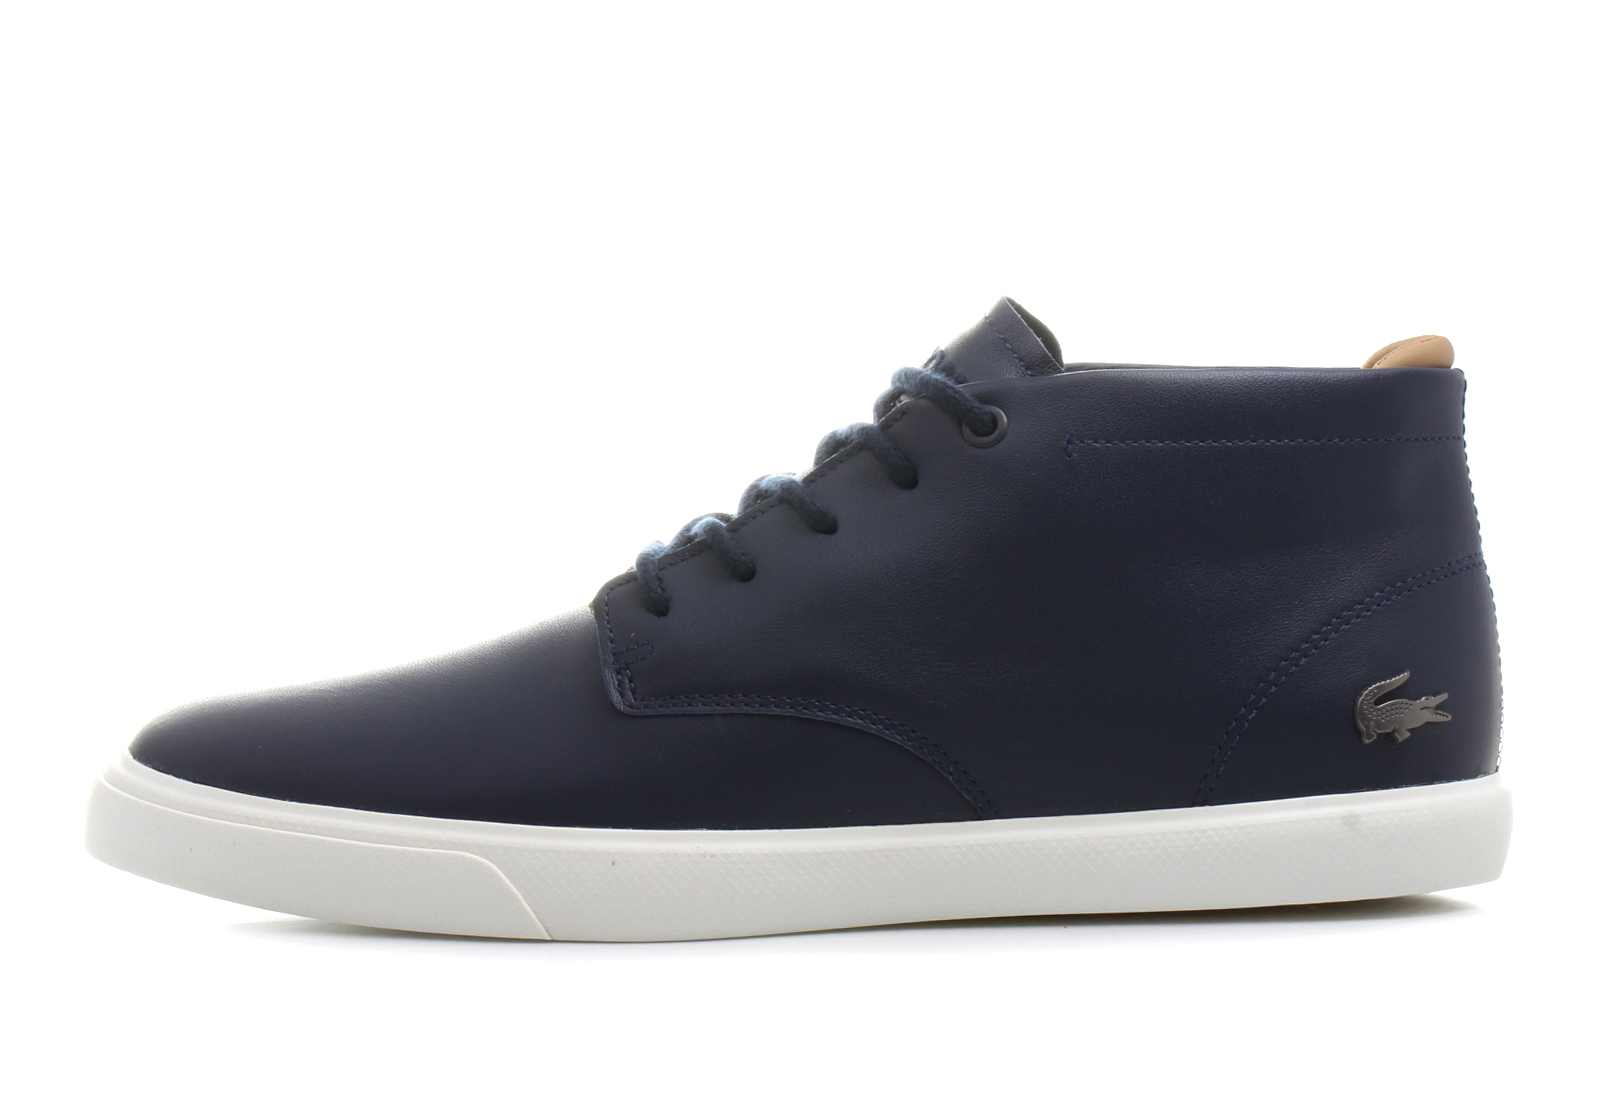 Lacoste Shoes Black High Top